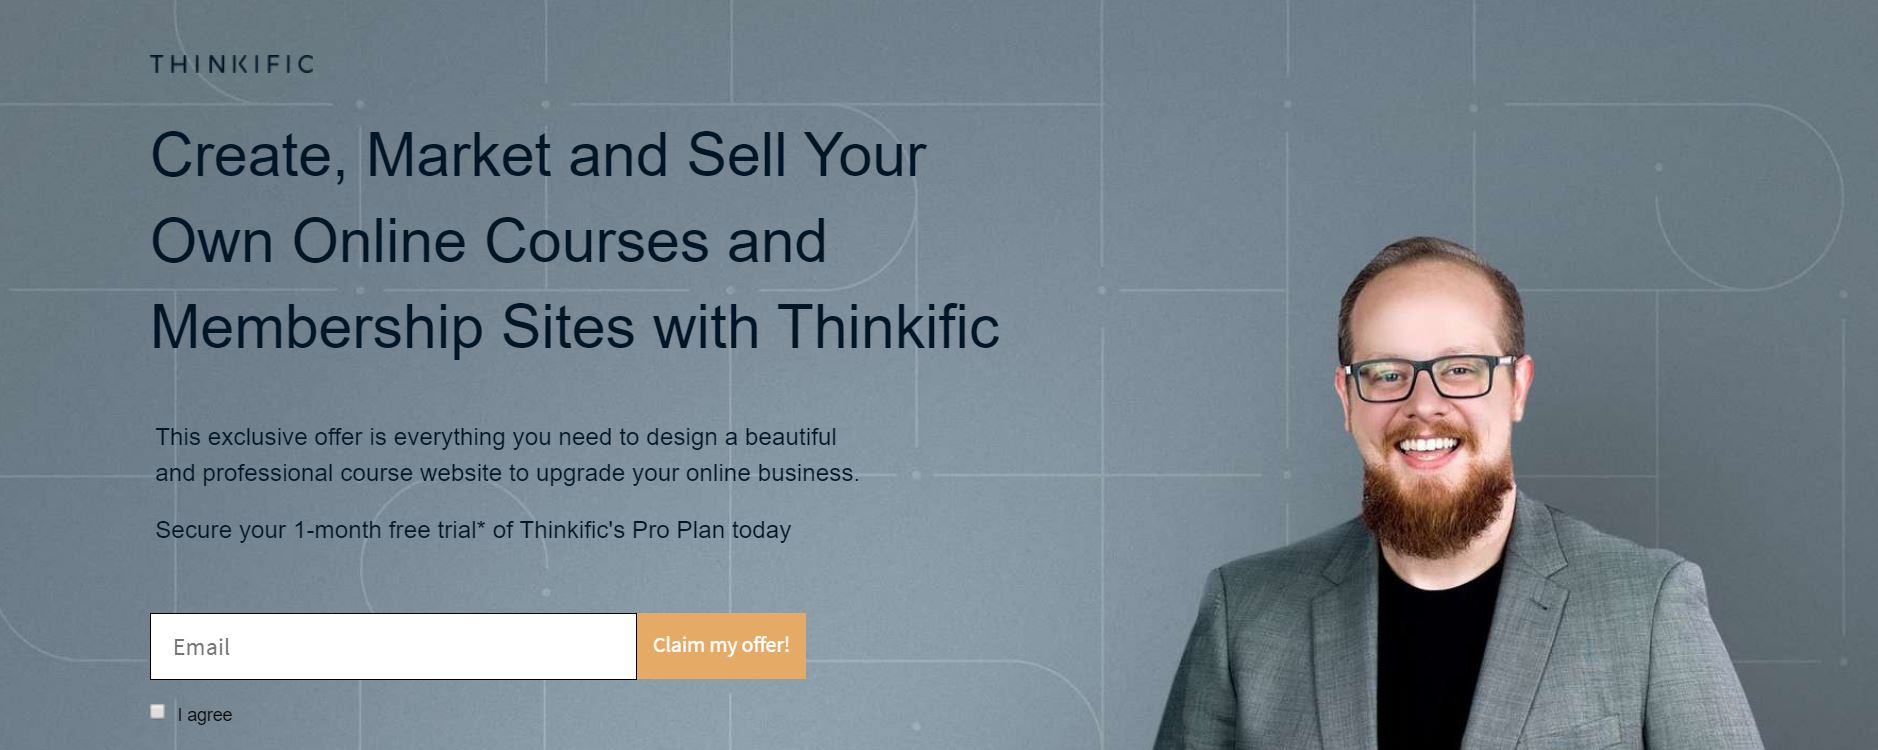 thinkfic coupon code 2021